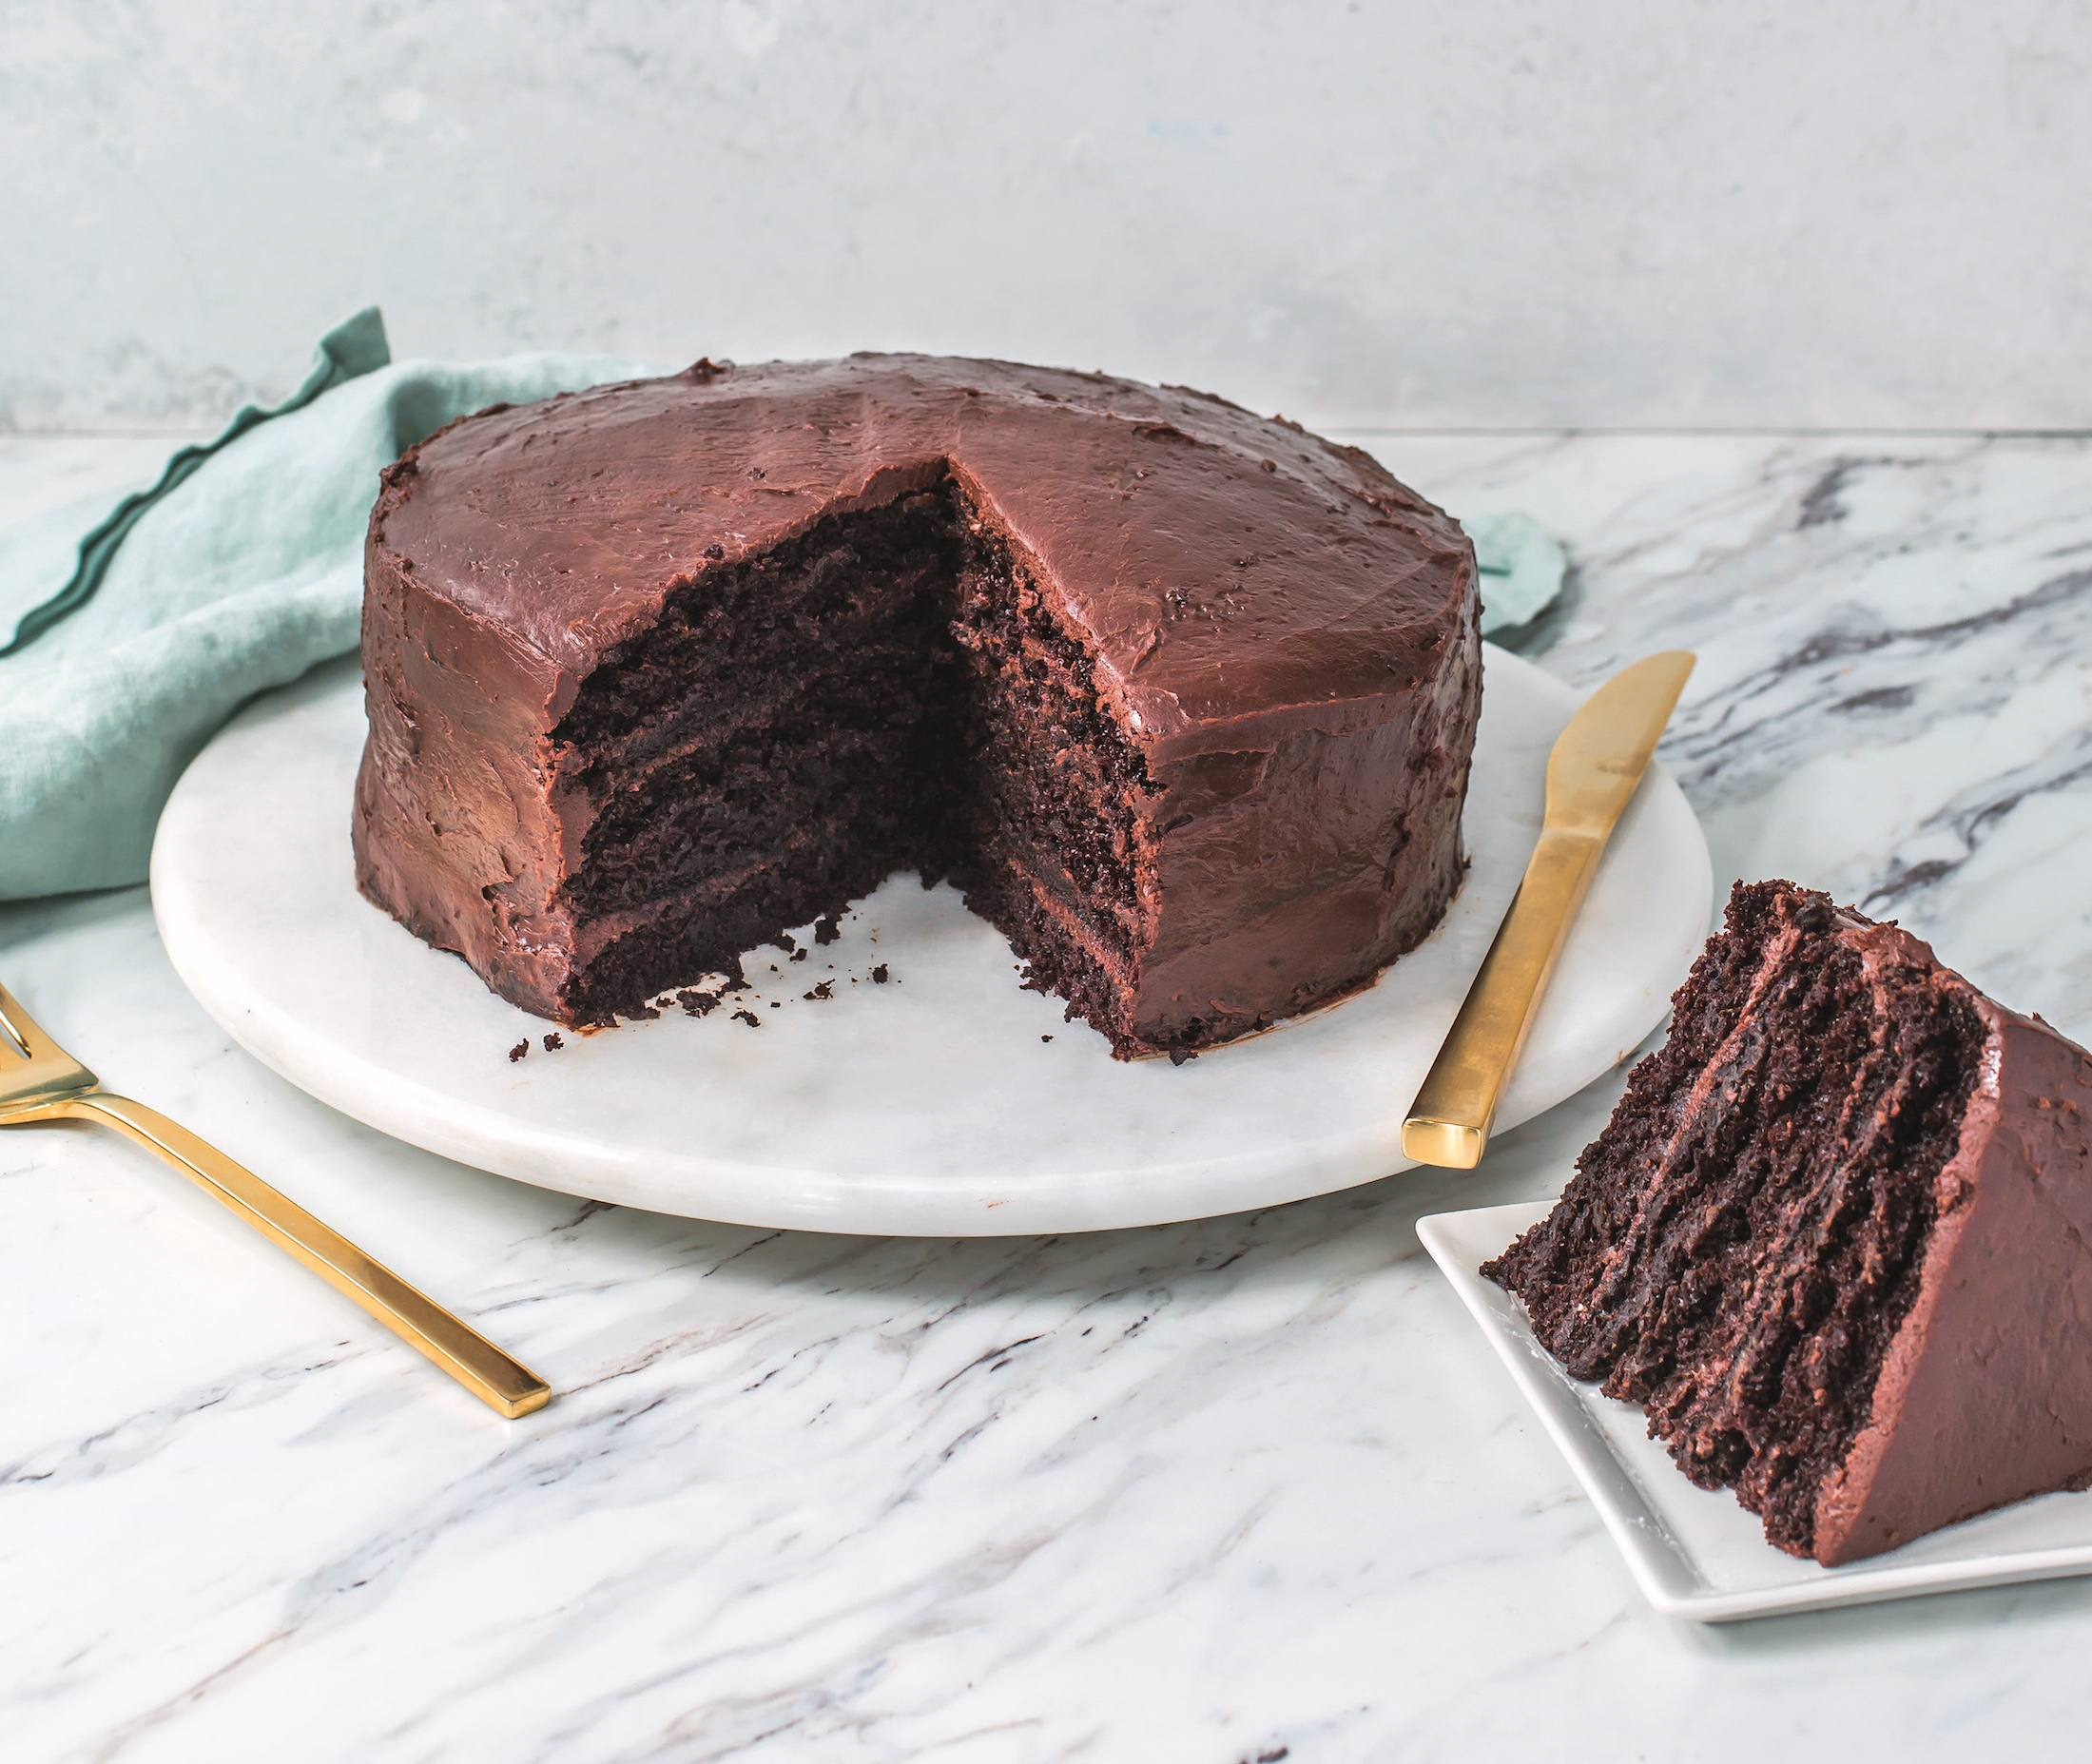 Sugar And Spice: Make This Mexican Hot Chocolate Cake